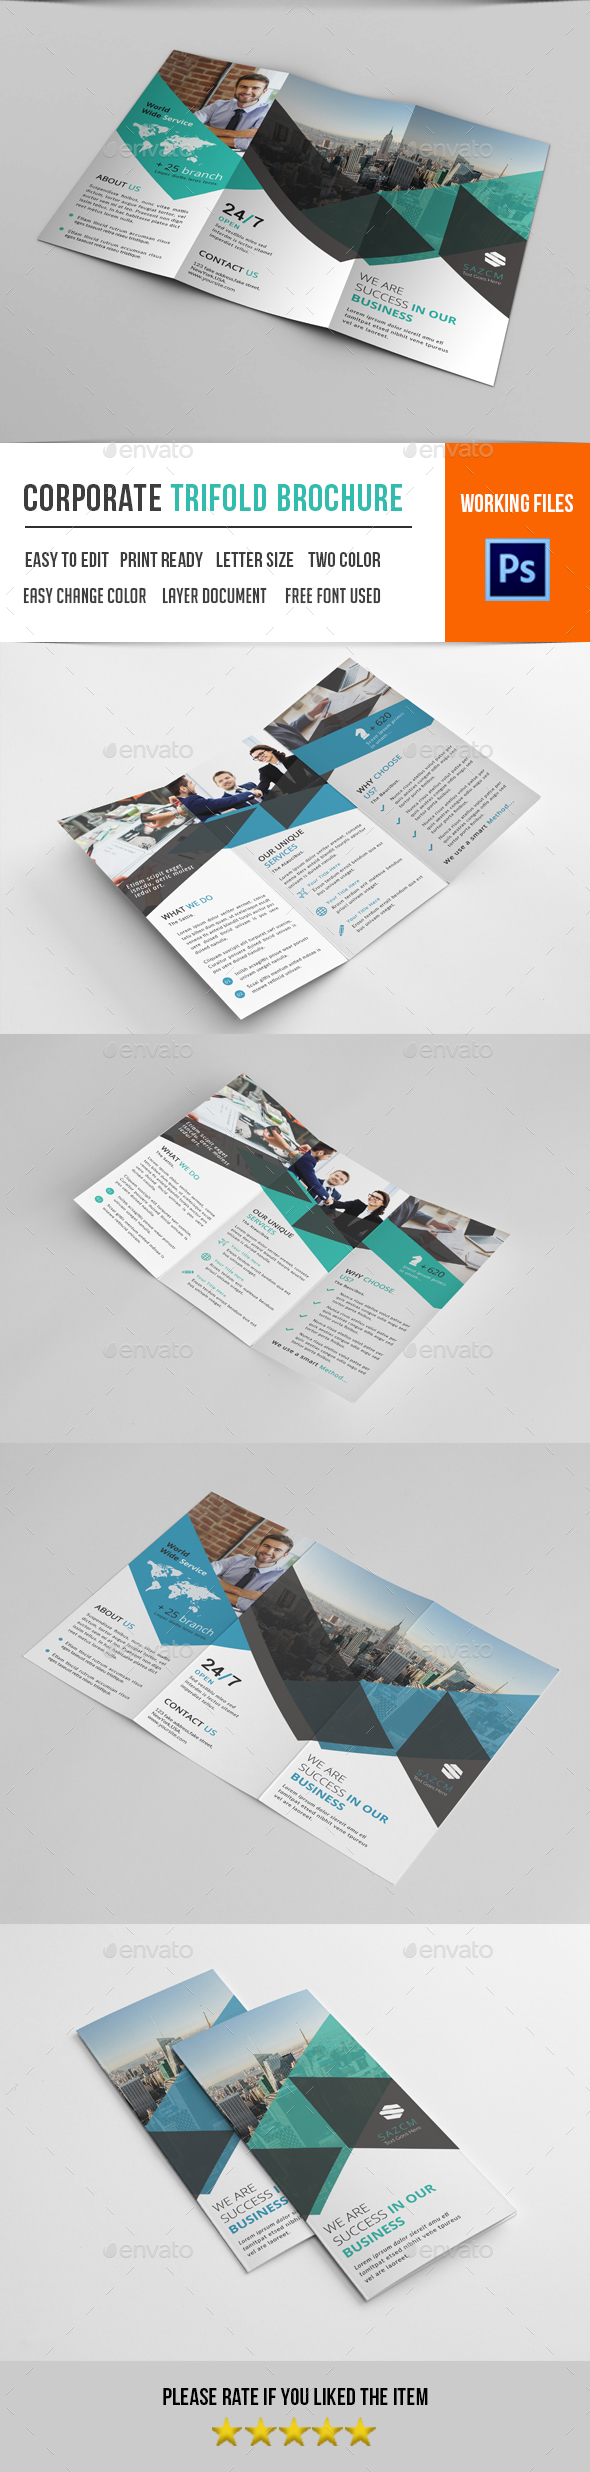 Corporate Trifold Brochure-V298 - Corporate Brochures